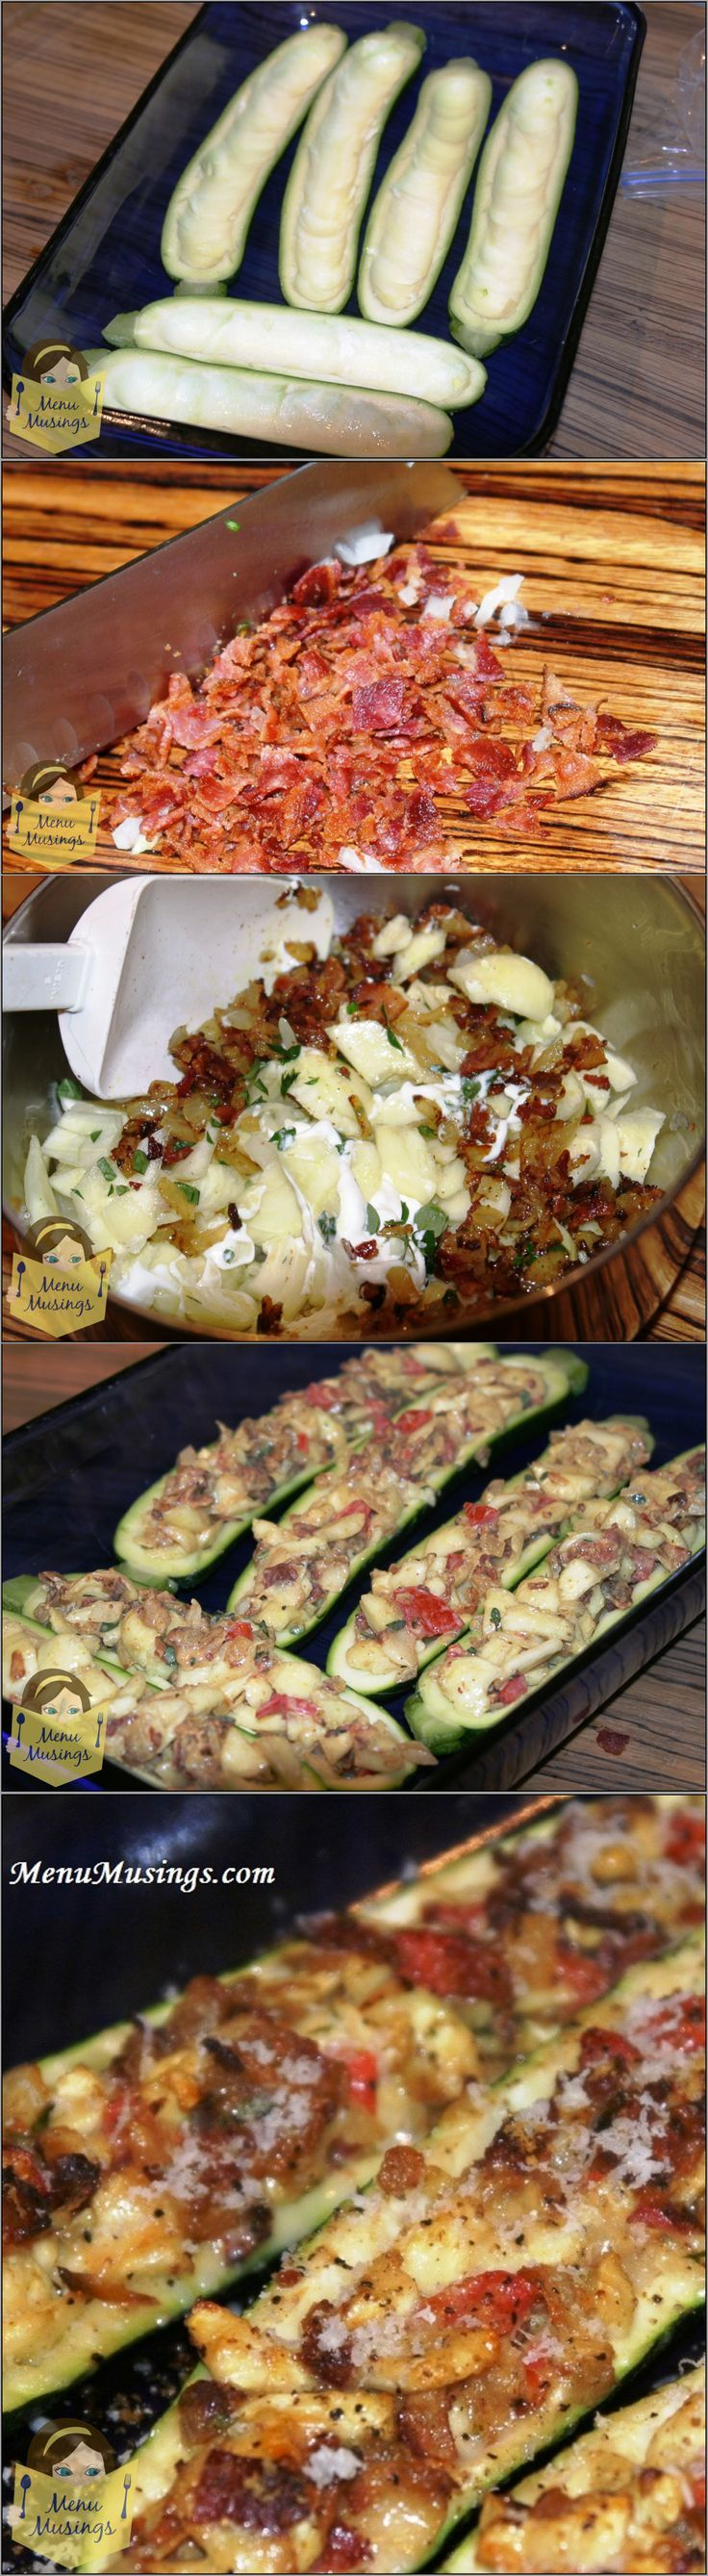 Stuffed Zucchini -  A definite favorite of my readers with over 200K people agreeing... These are SO easy and delicious.  You could totally make these up ahead of time, refrigerate, and throw them in the oven to bake before your meal.  Step-by-step photos and short video tutorial. ?